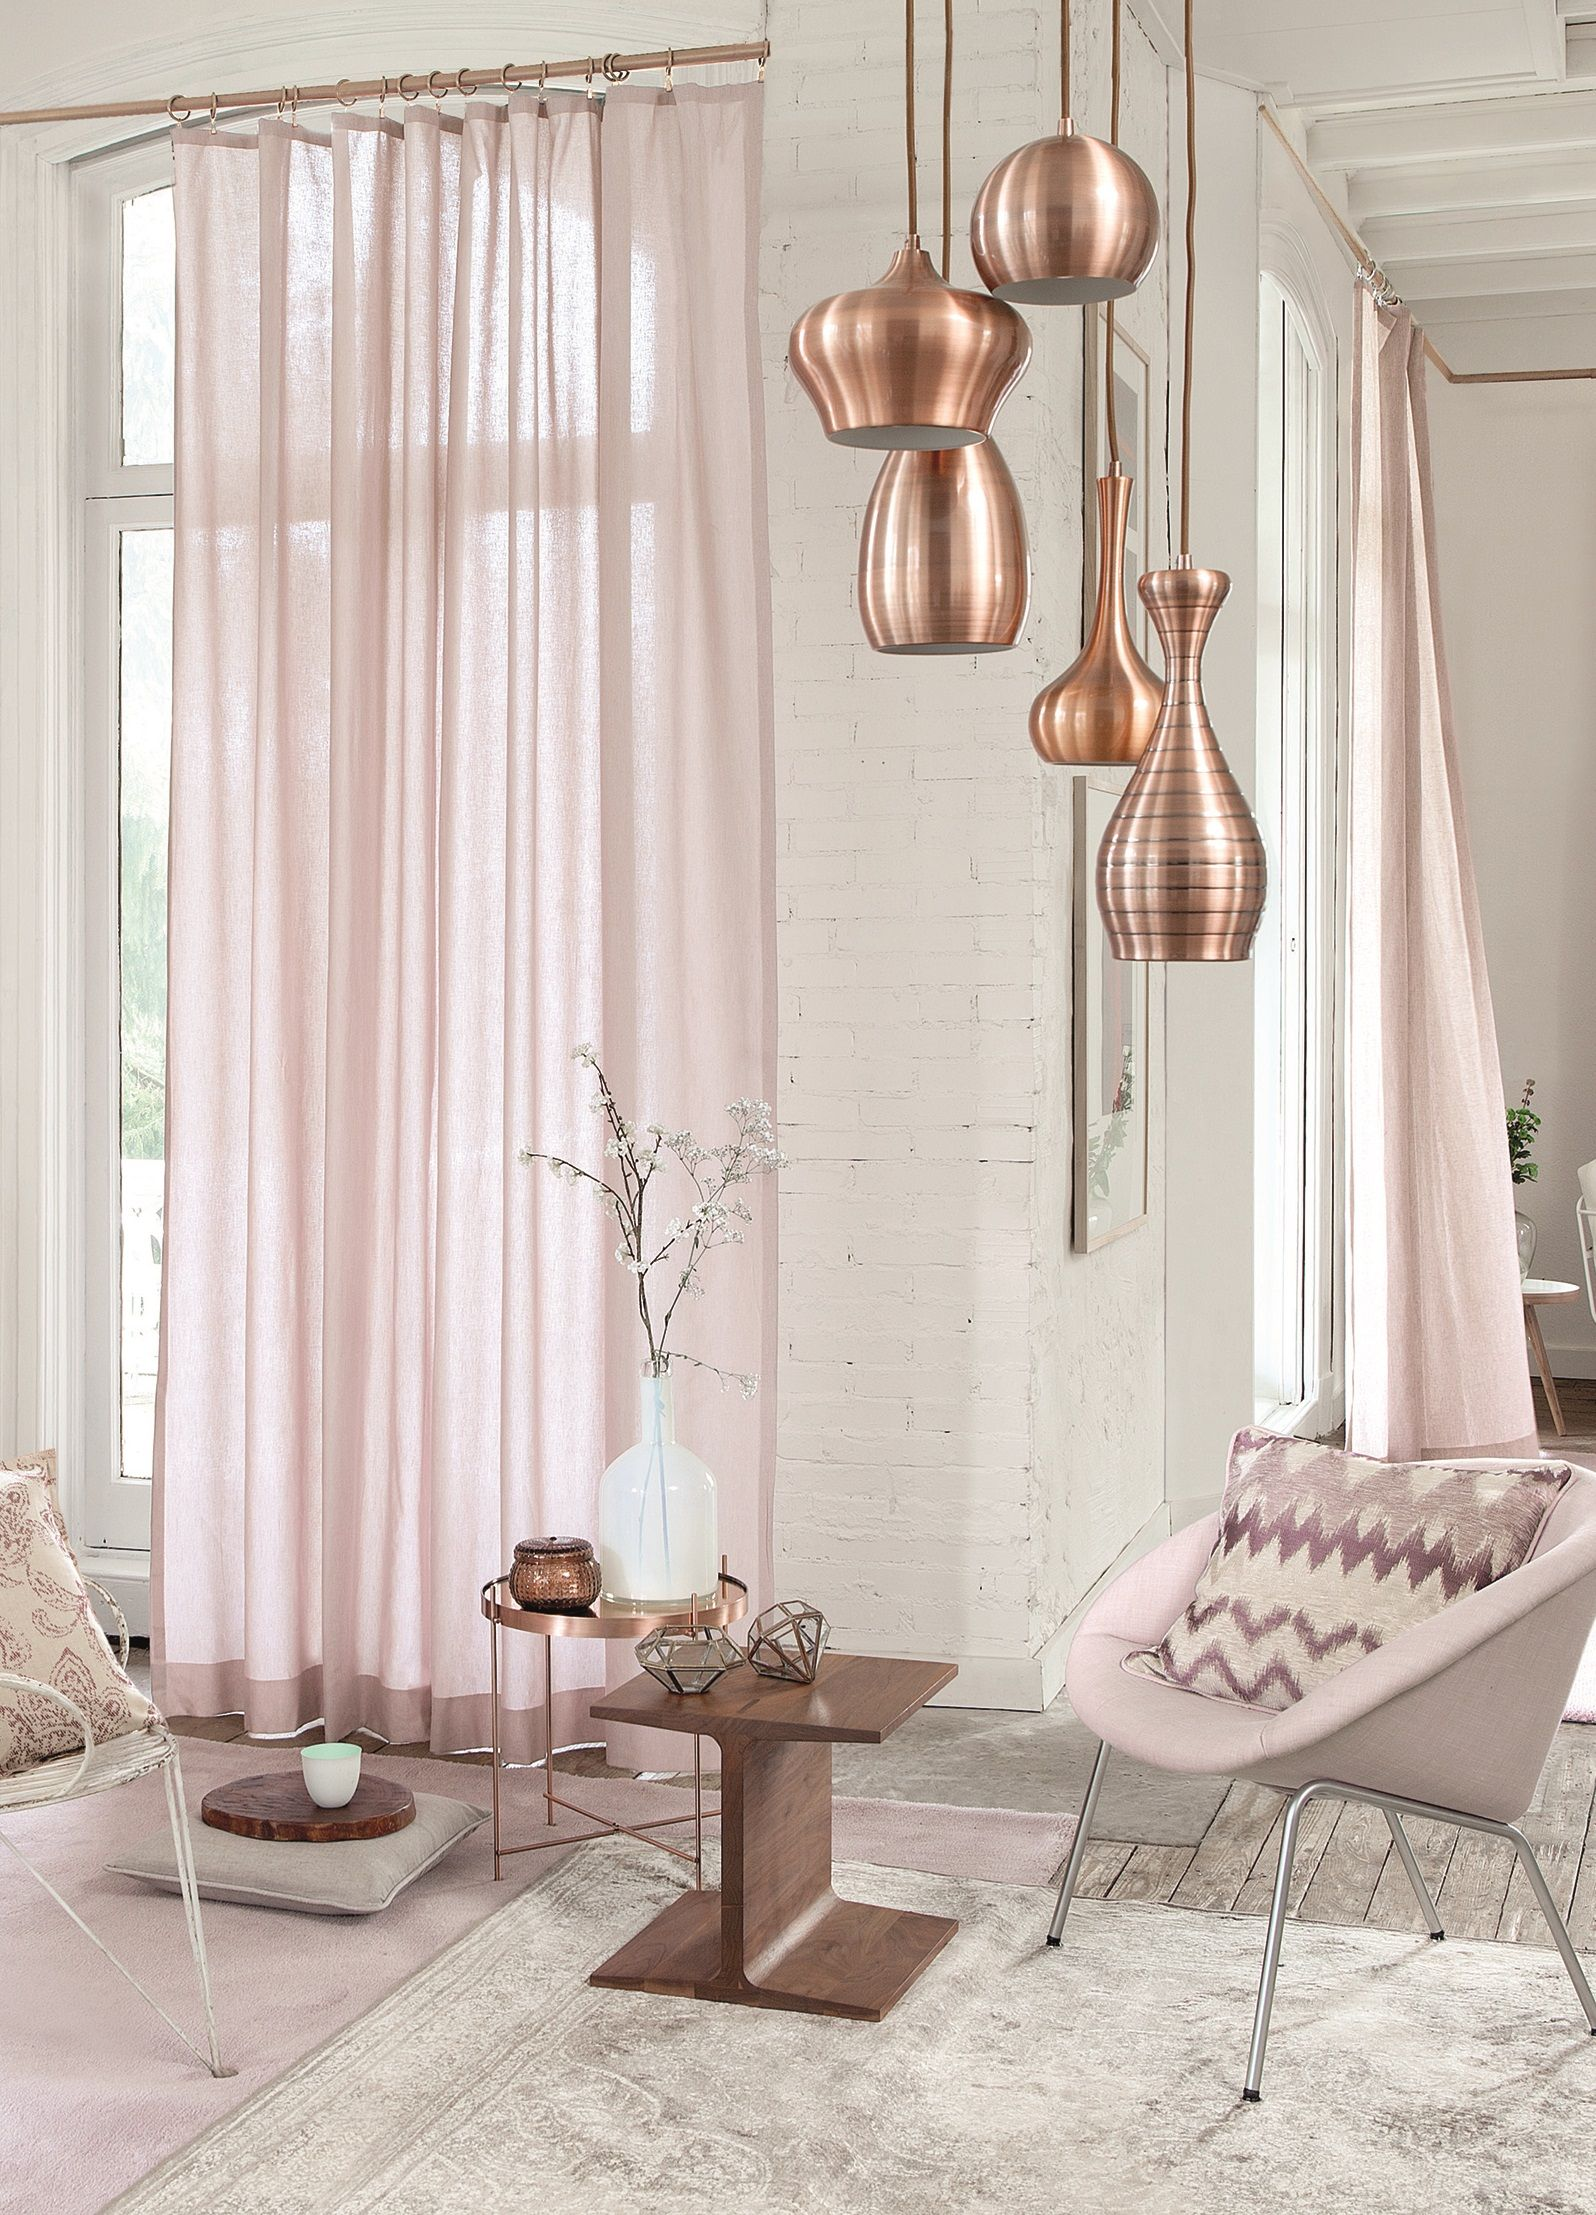 mooi: pastel roze in between gordijnen | Home | Pinterest | Vorhänge ...